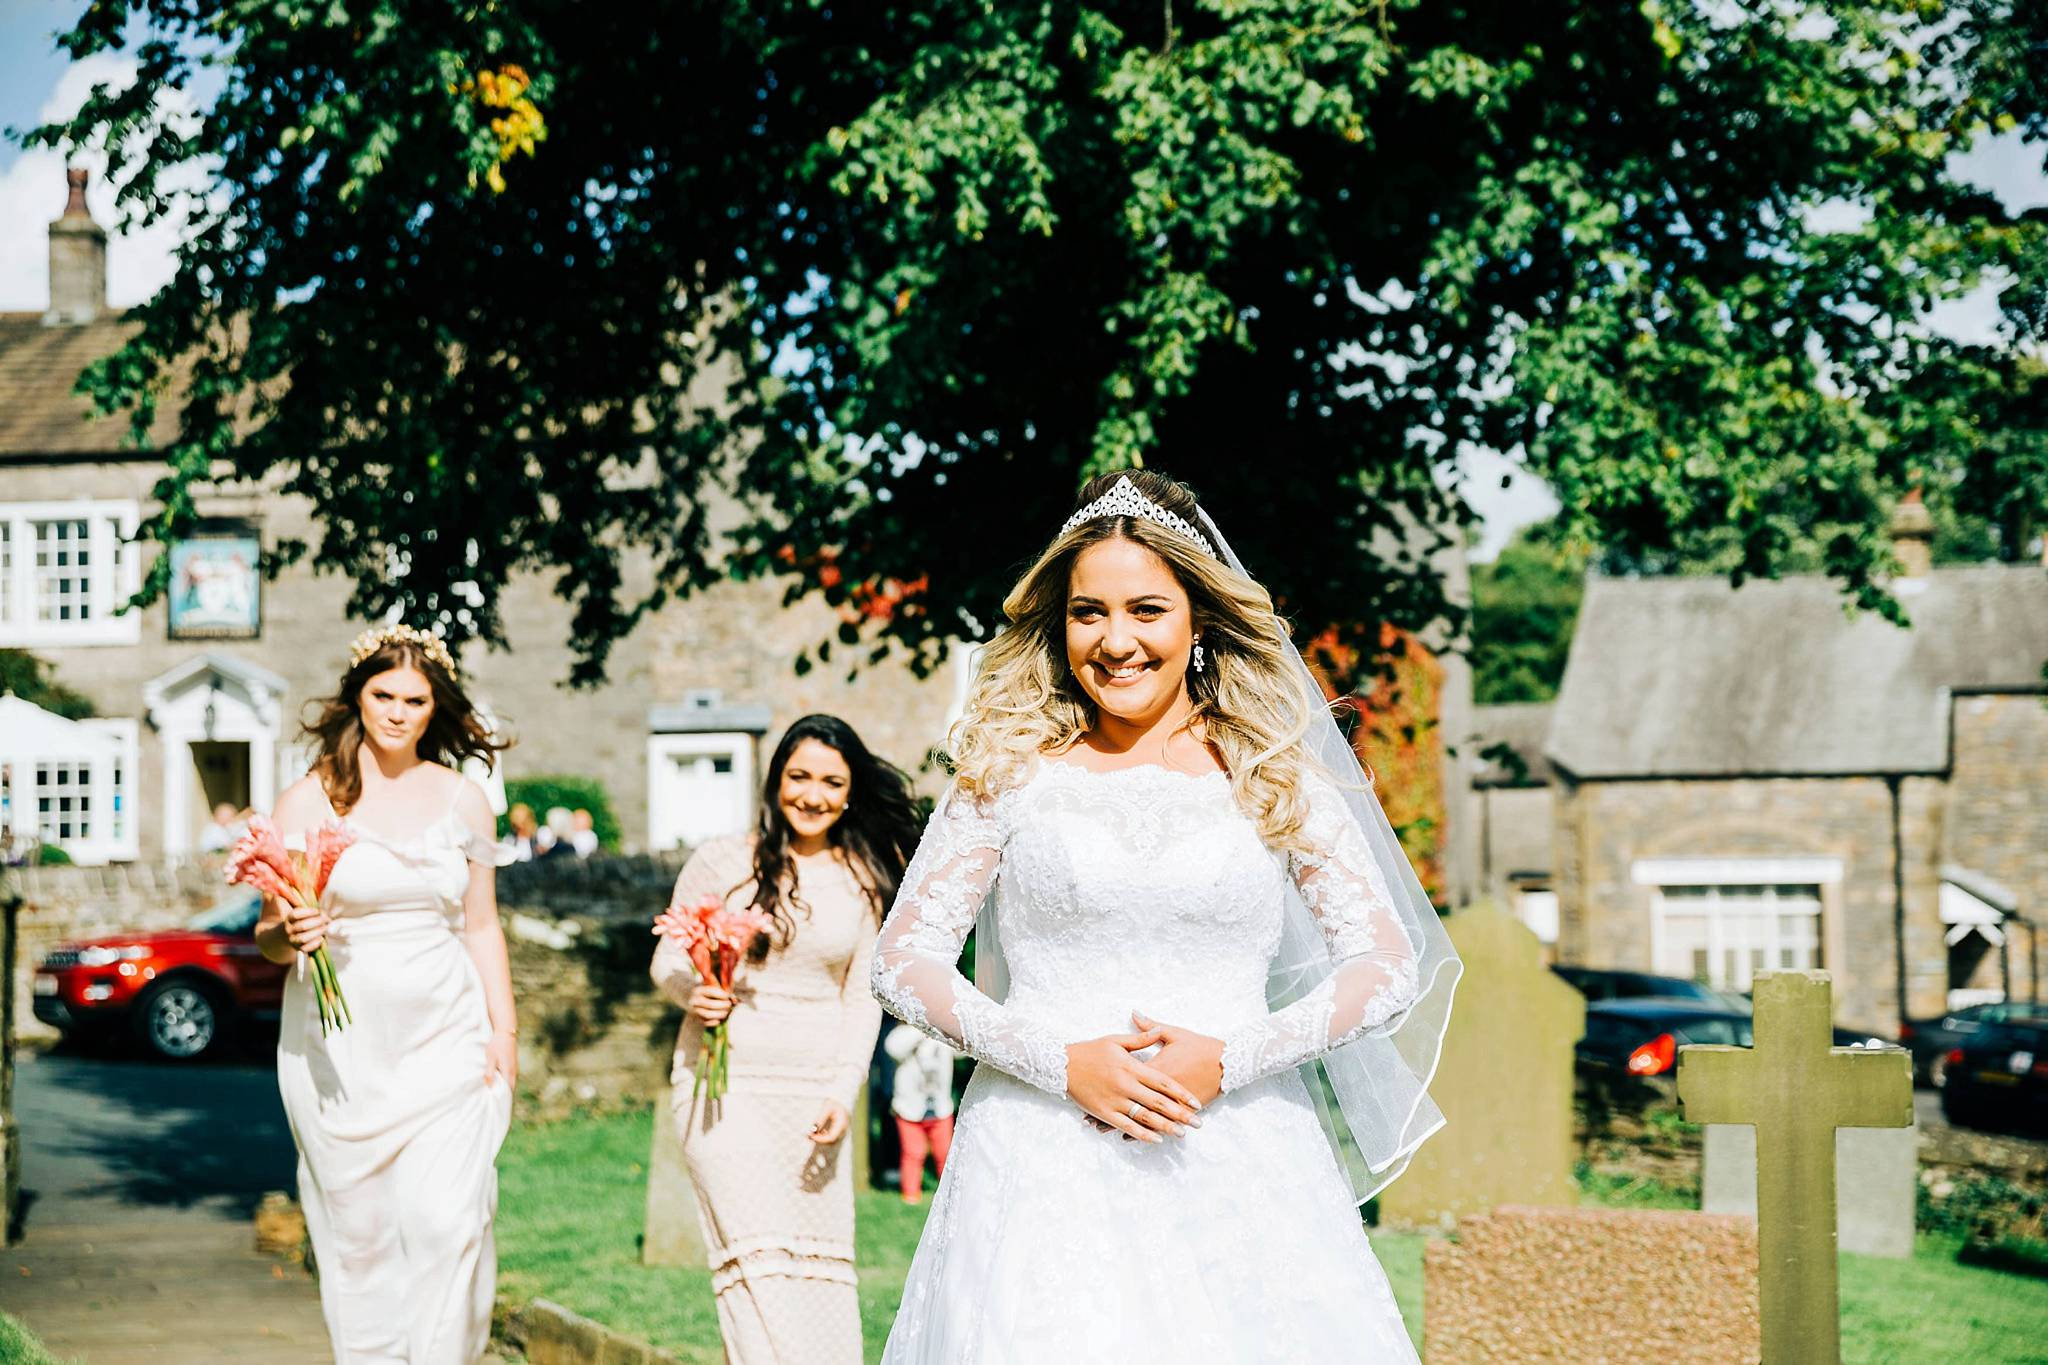 Natural wedding photography Manchester - Clare Robinson Photography_0037.jpg